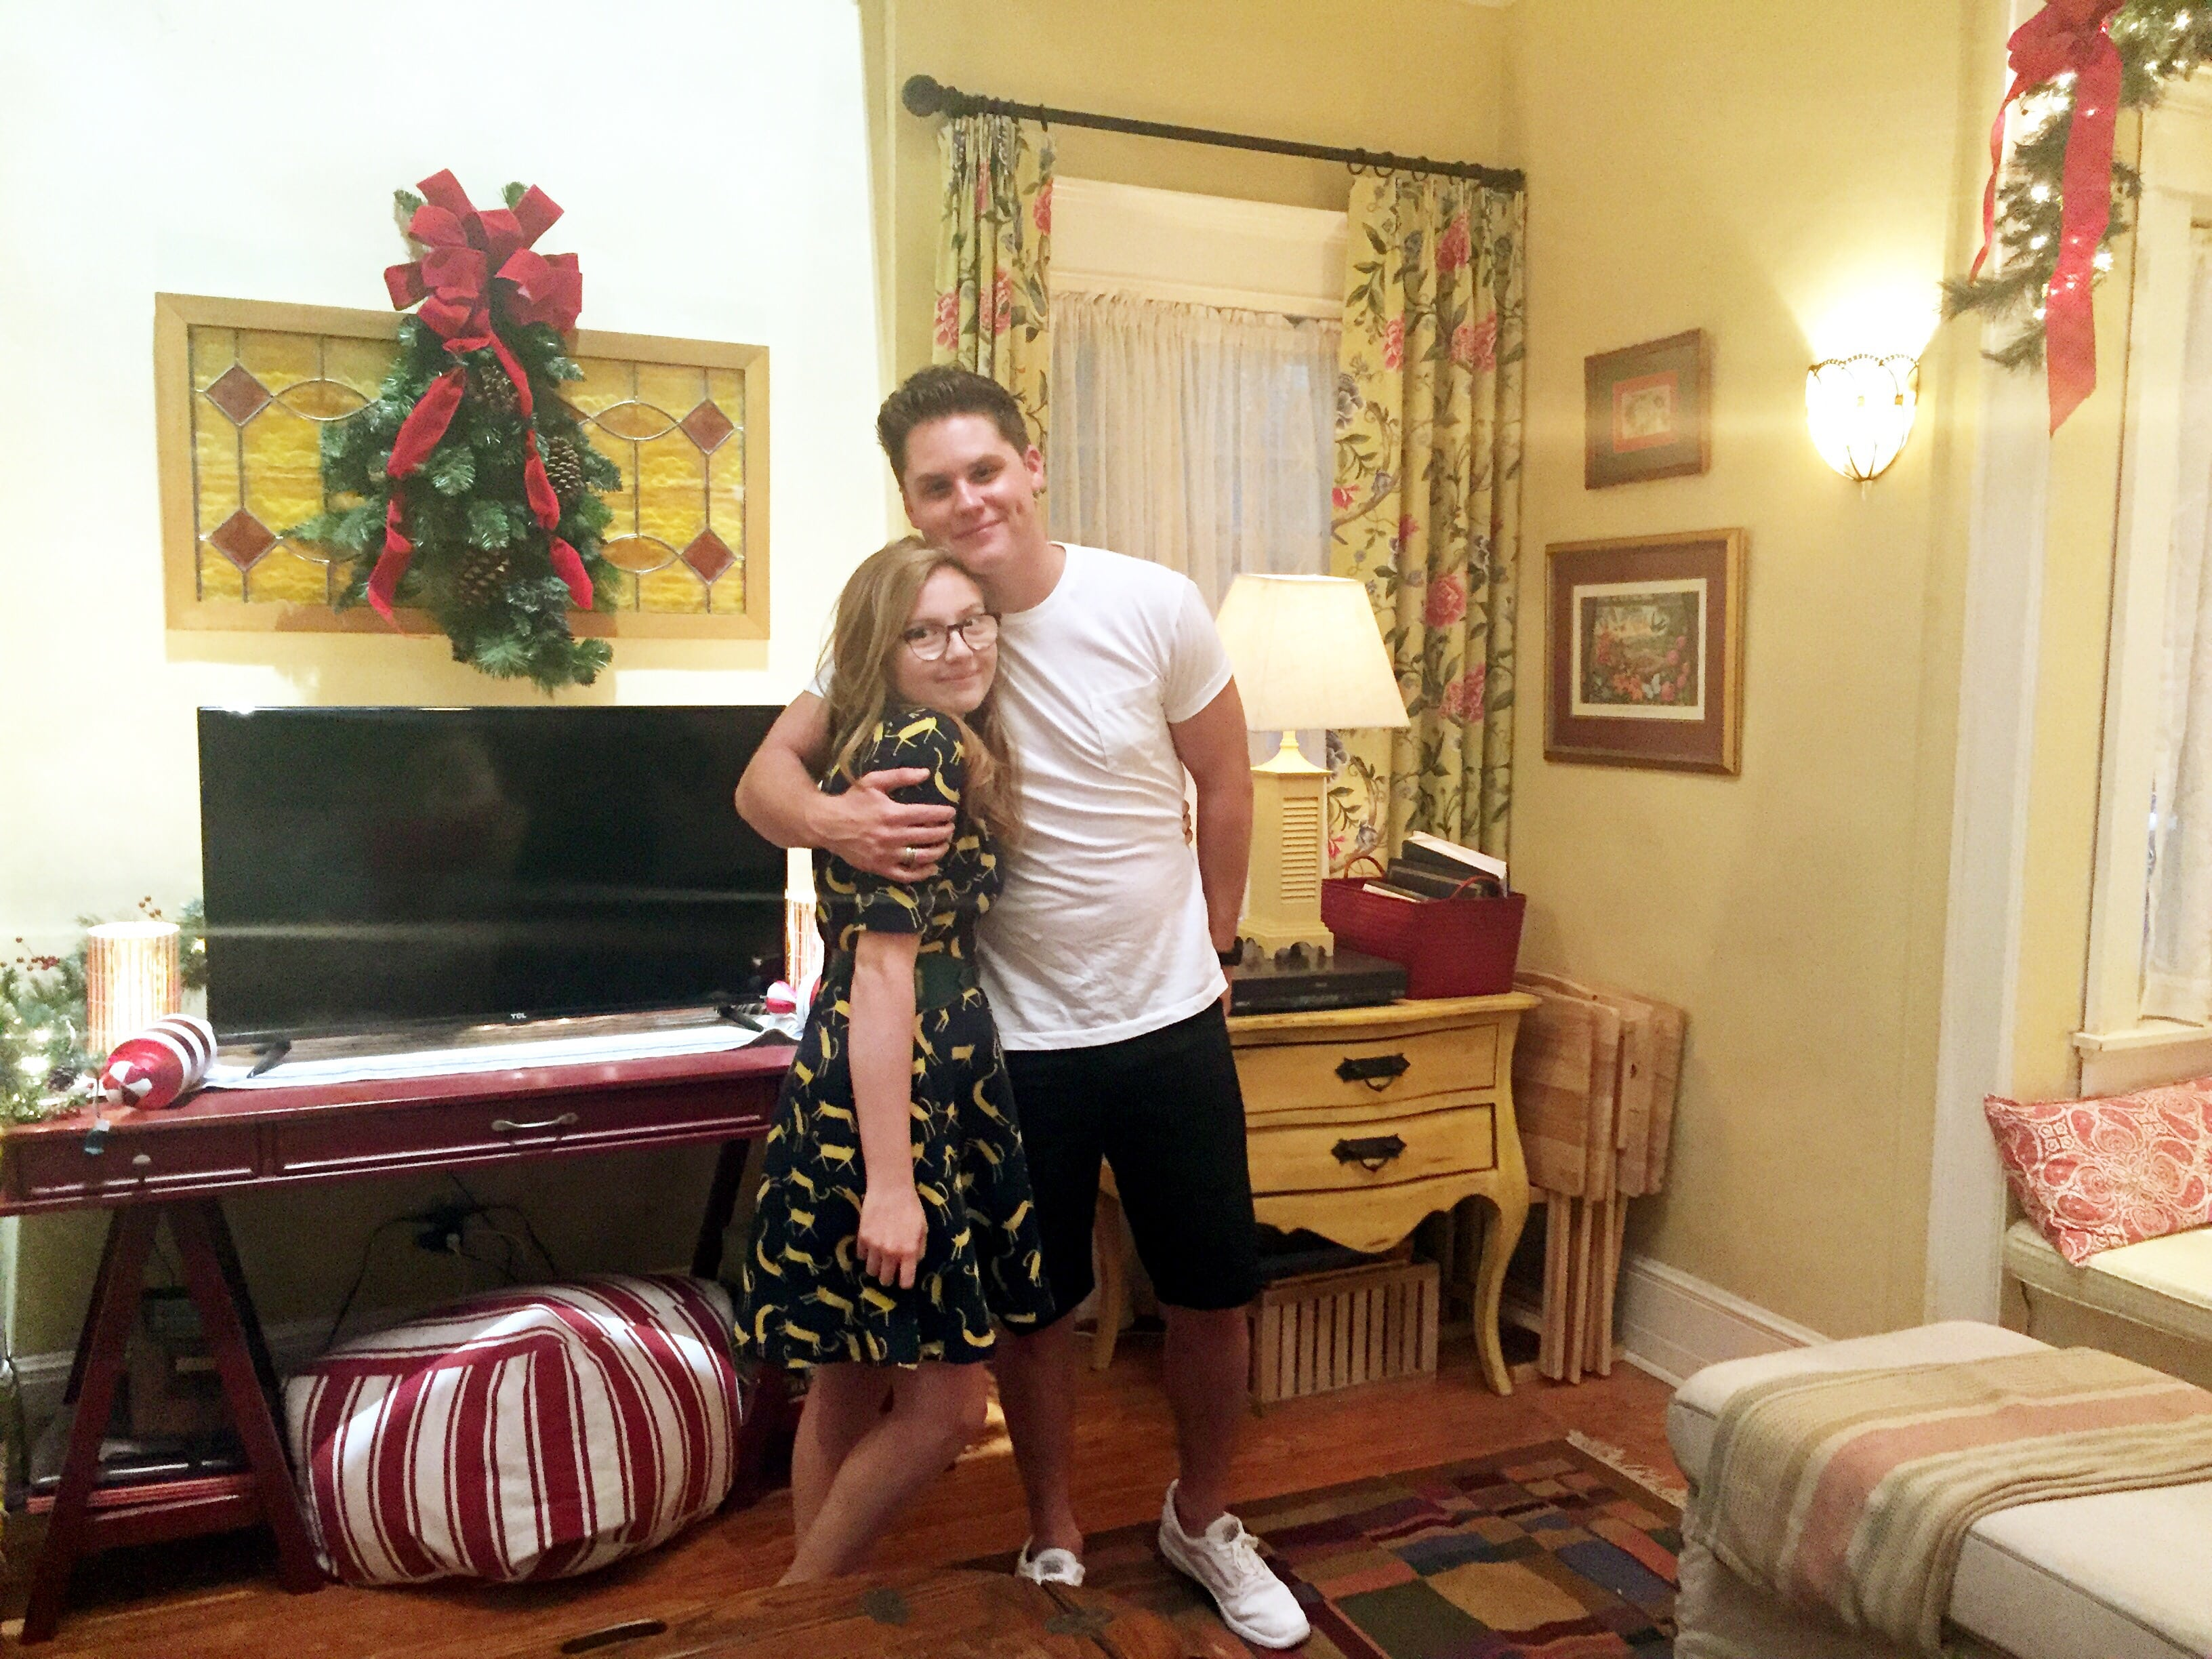 Matt Shively and Bebe Wood of The Real O'Neals